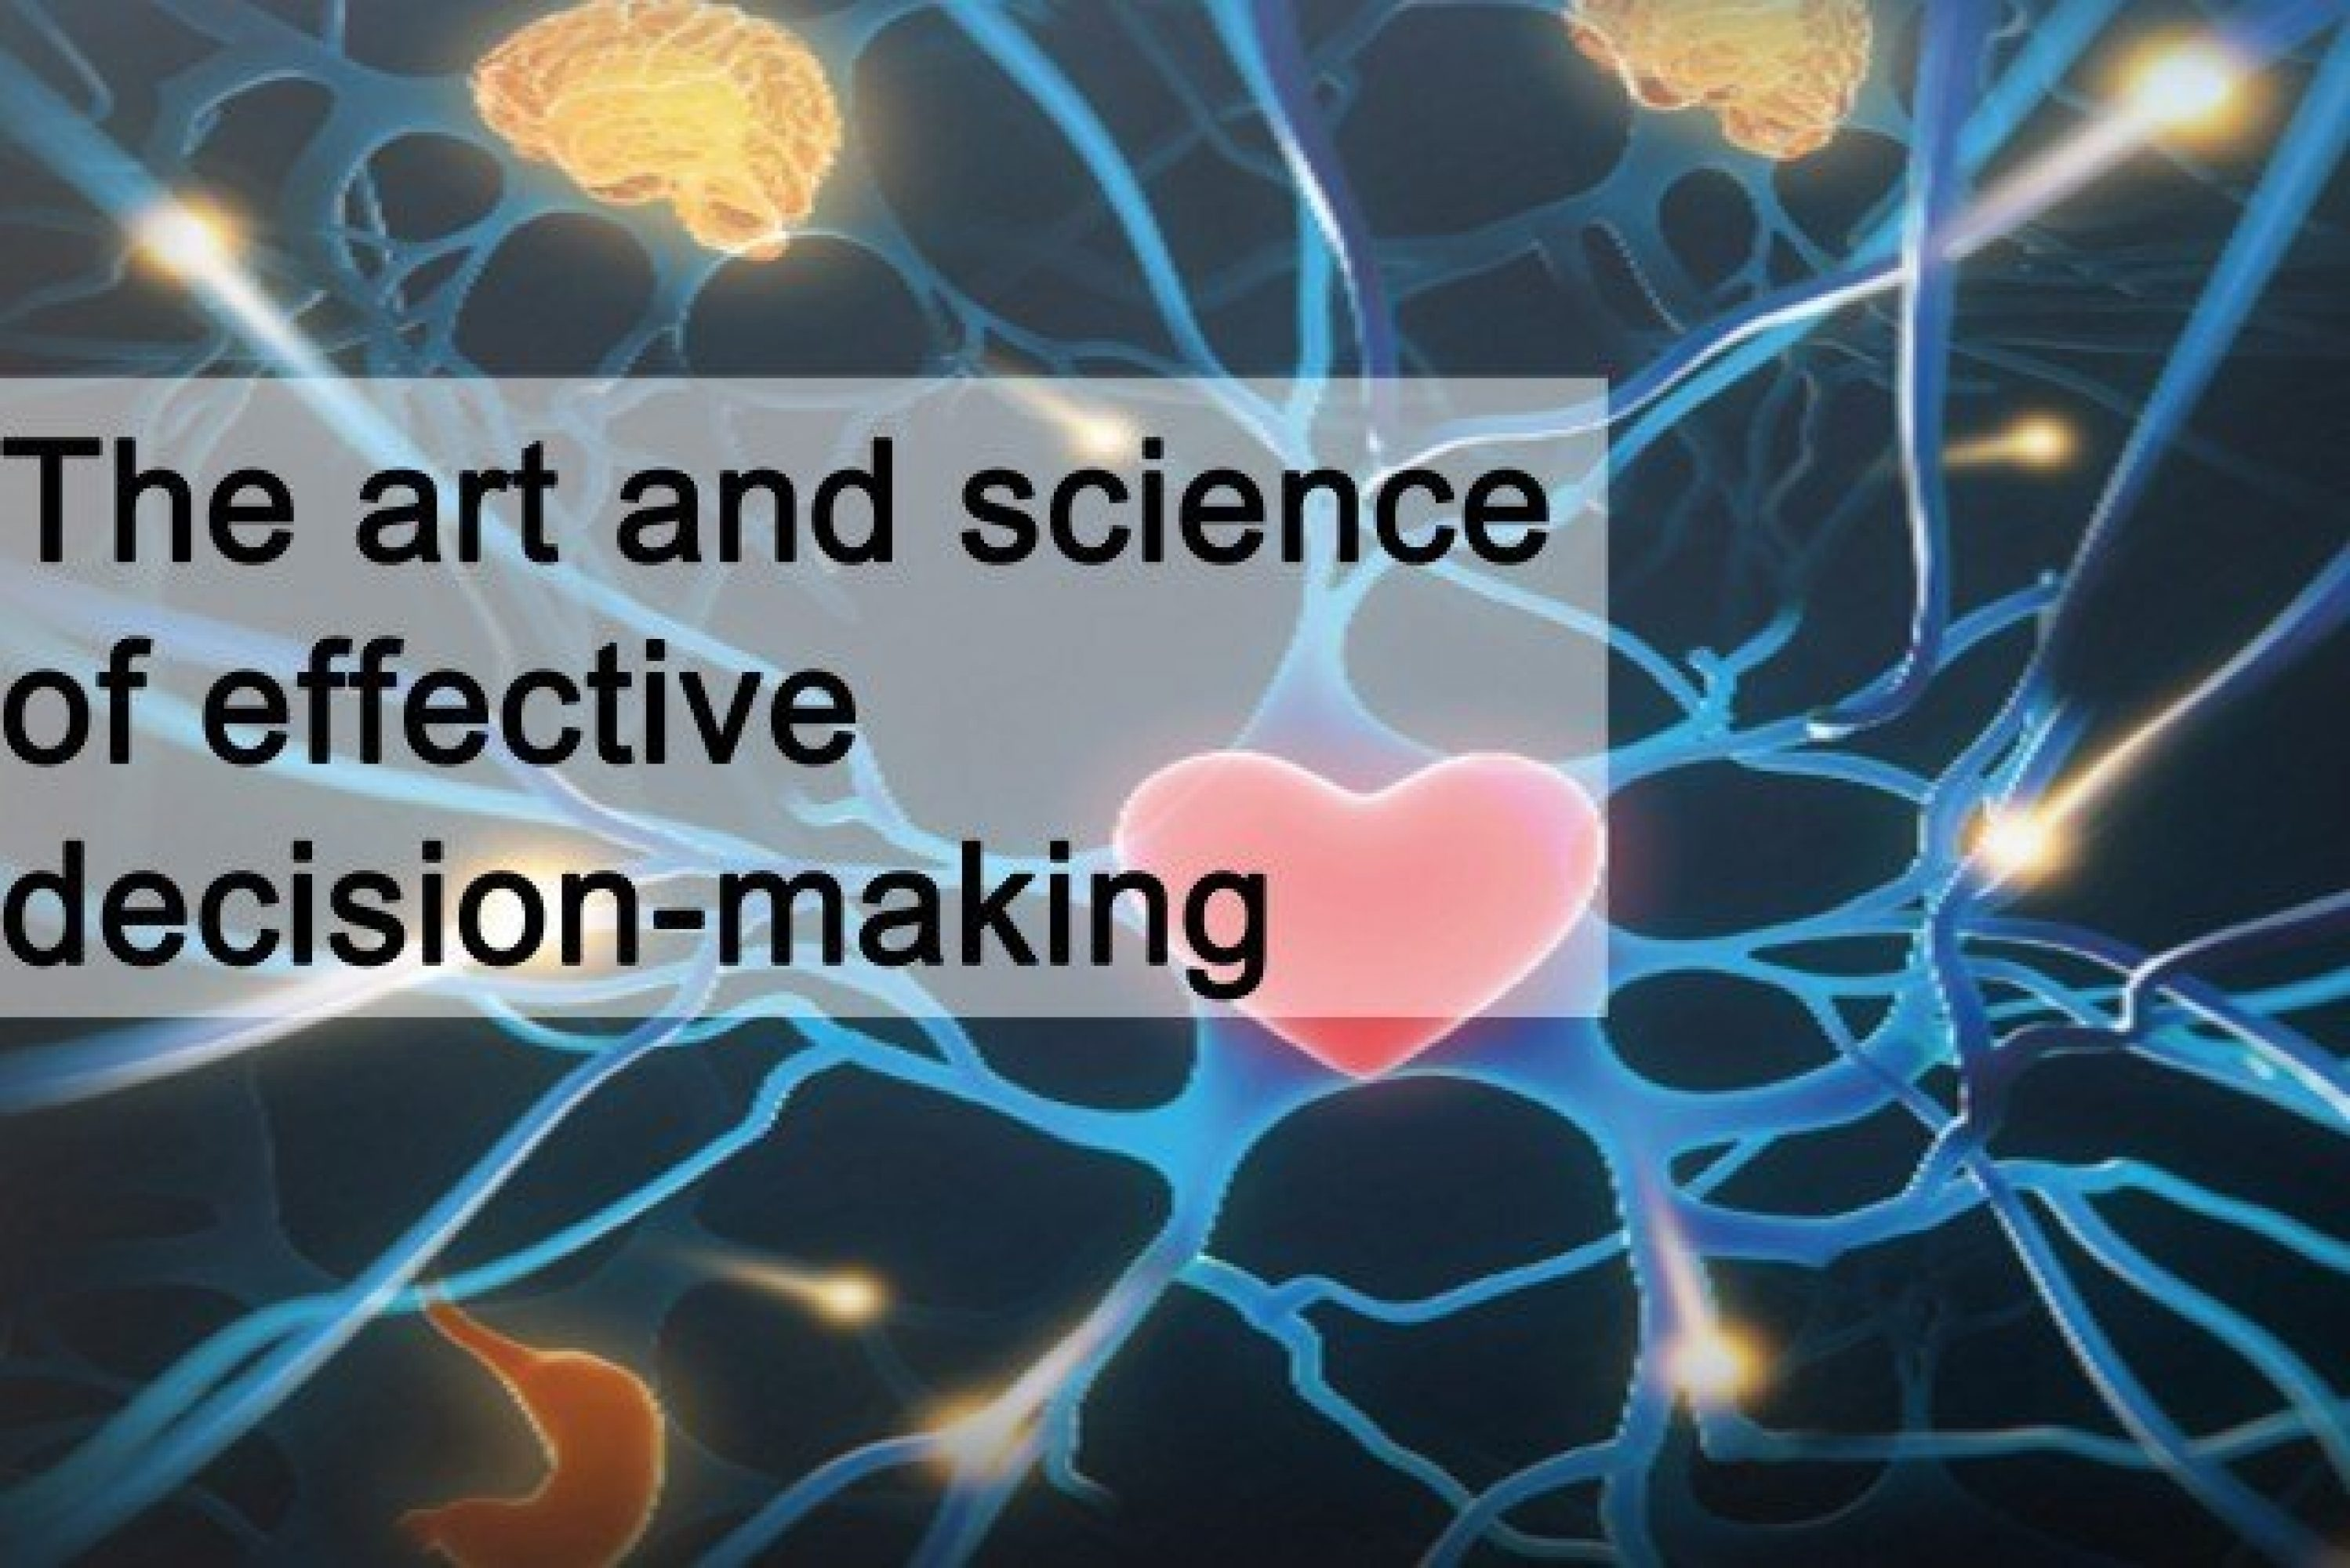 The art and science of effective decision-making